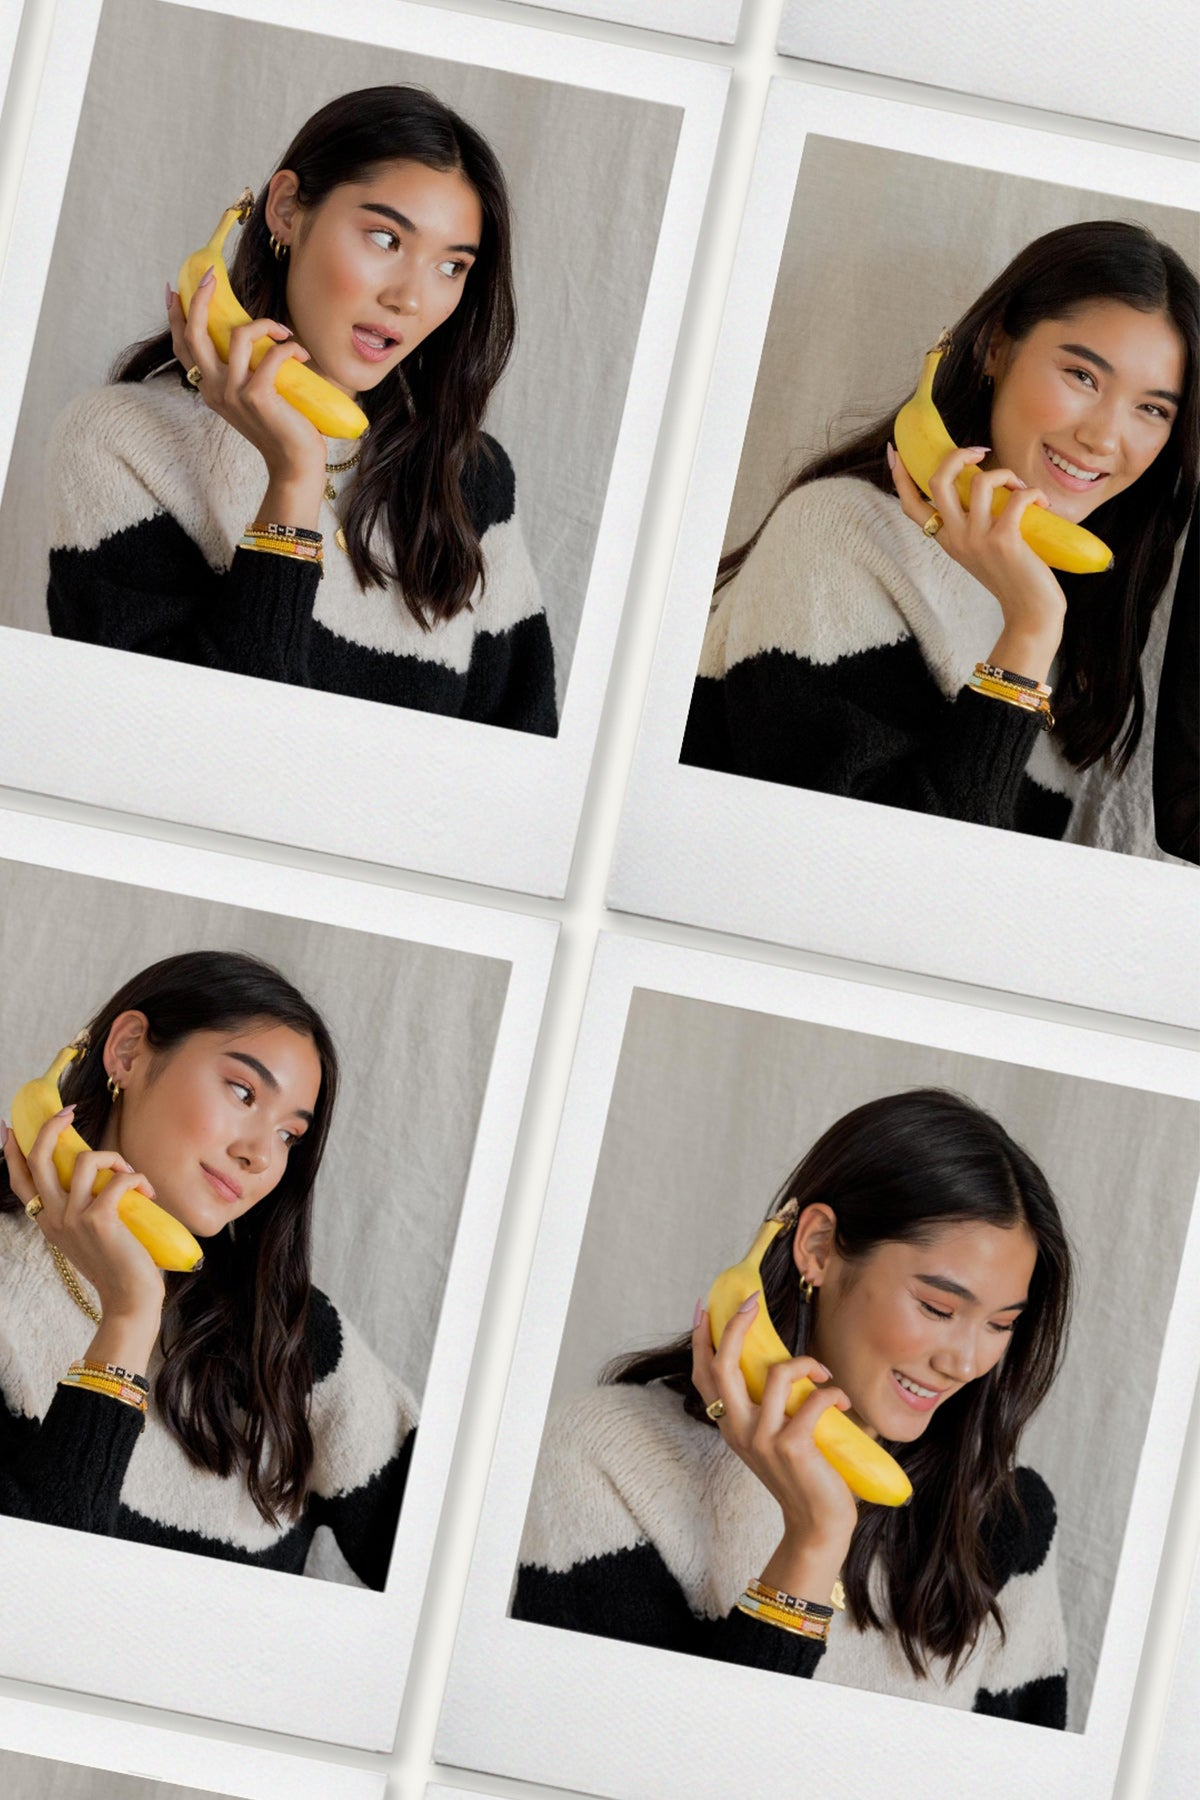 Polaroids of a girl holding a yellow banana pretending it's a telephone